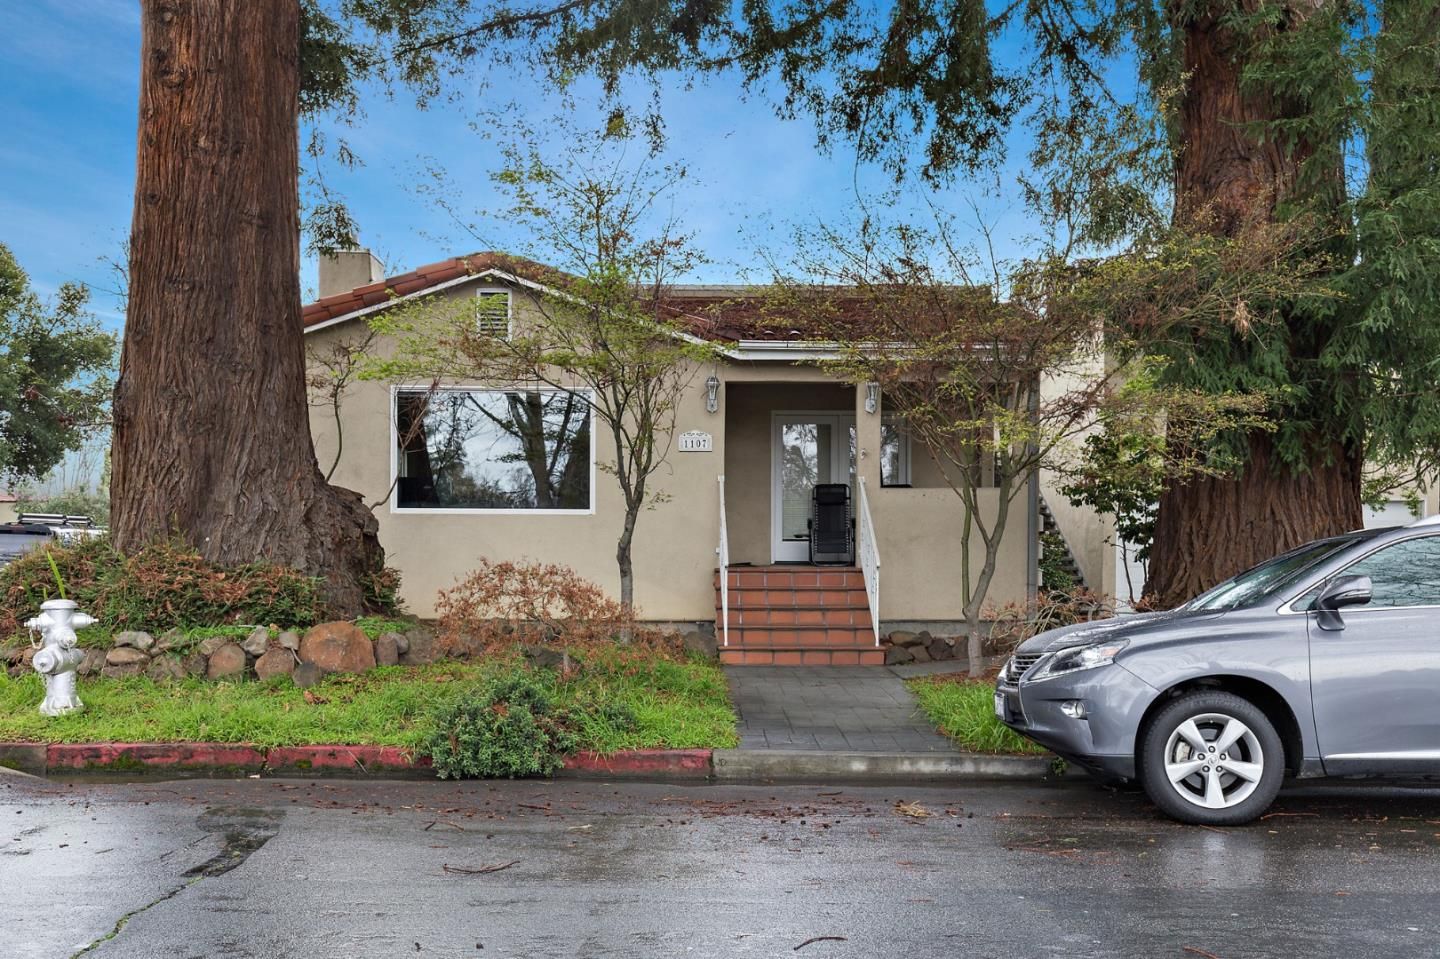 Multi-Family Home for Sale at 1107 High School WAY 1107 High School WAY Mountain View, California 94041 United States